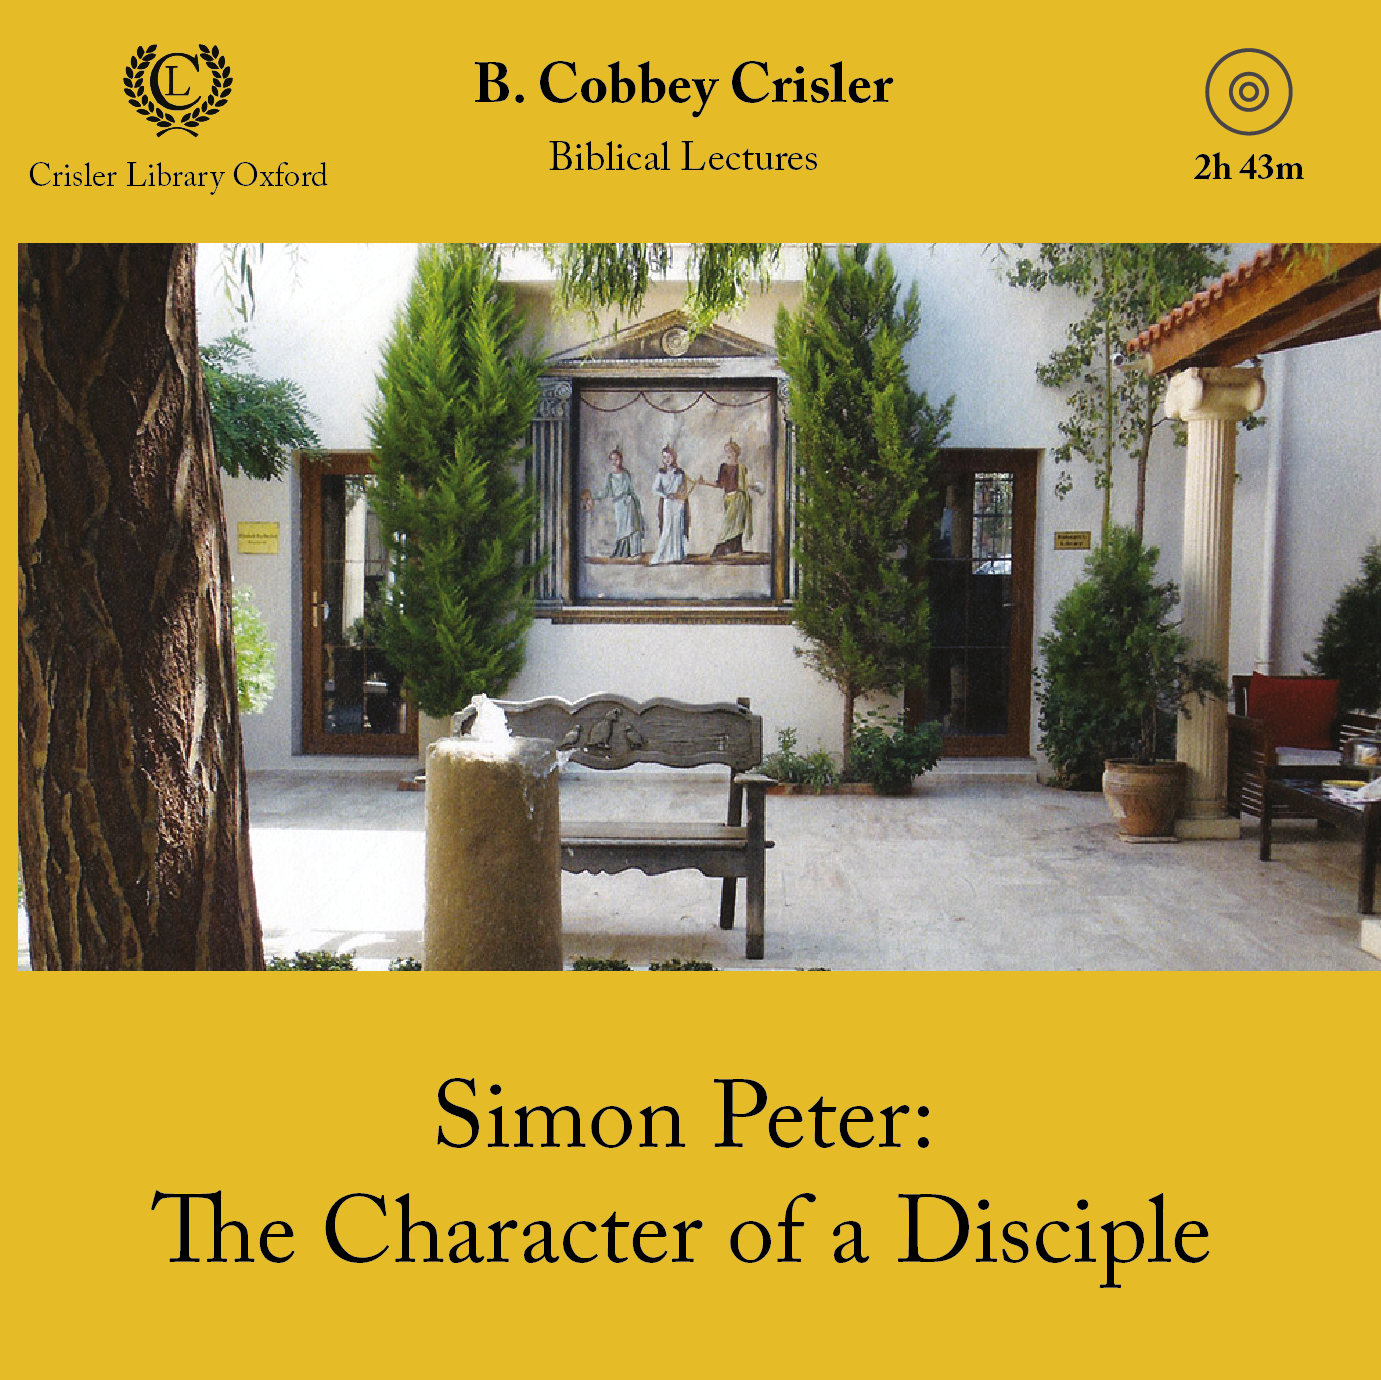 Simon Peter: The Character of a Disciple